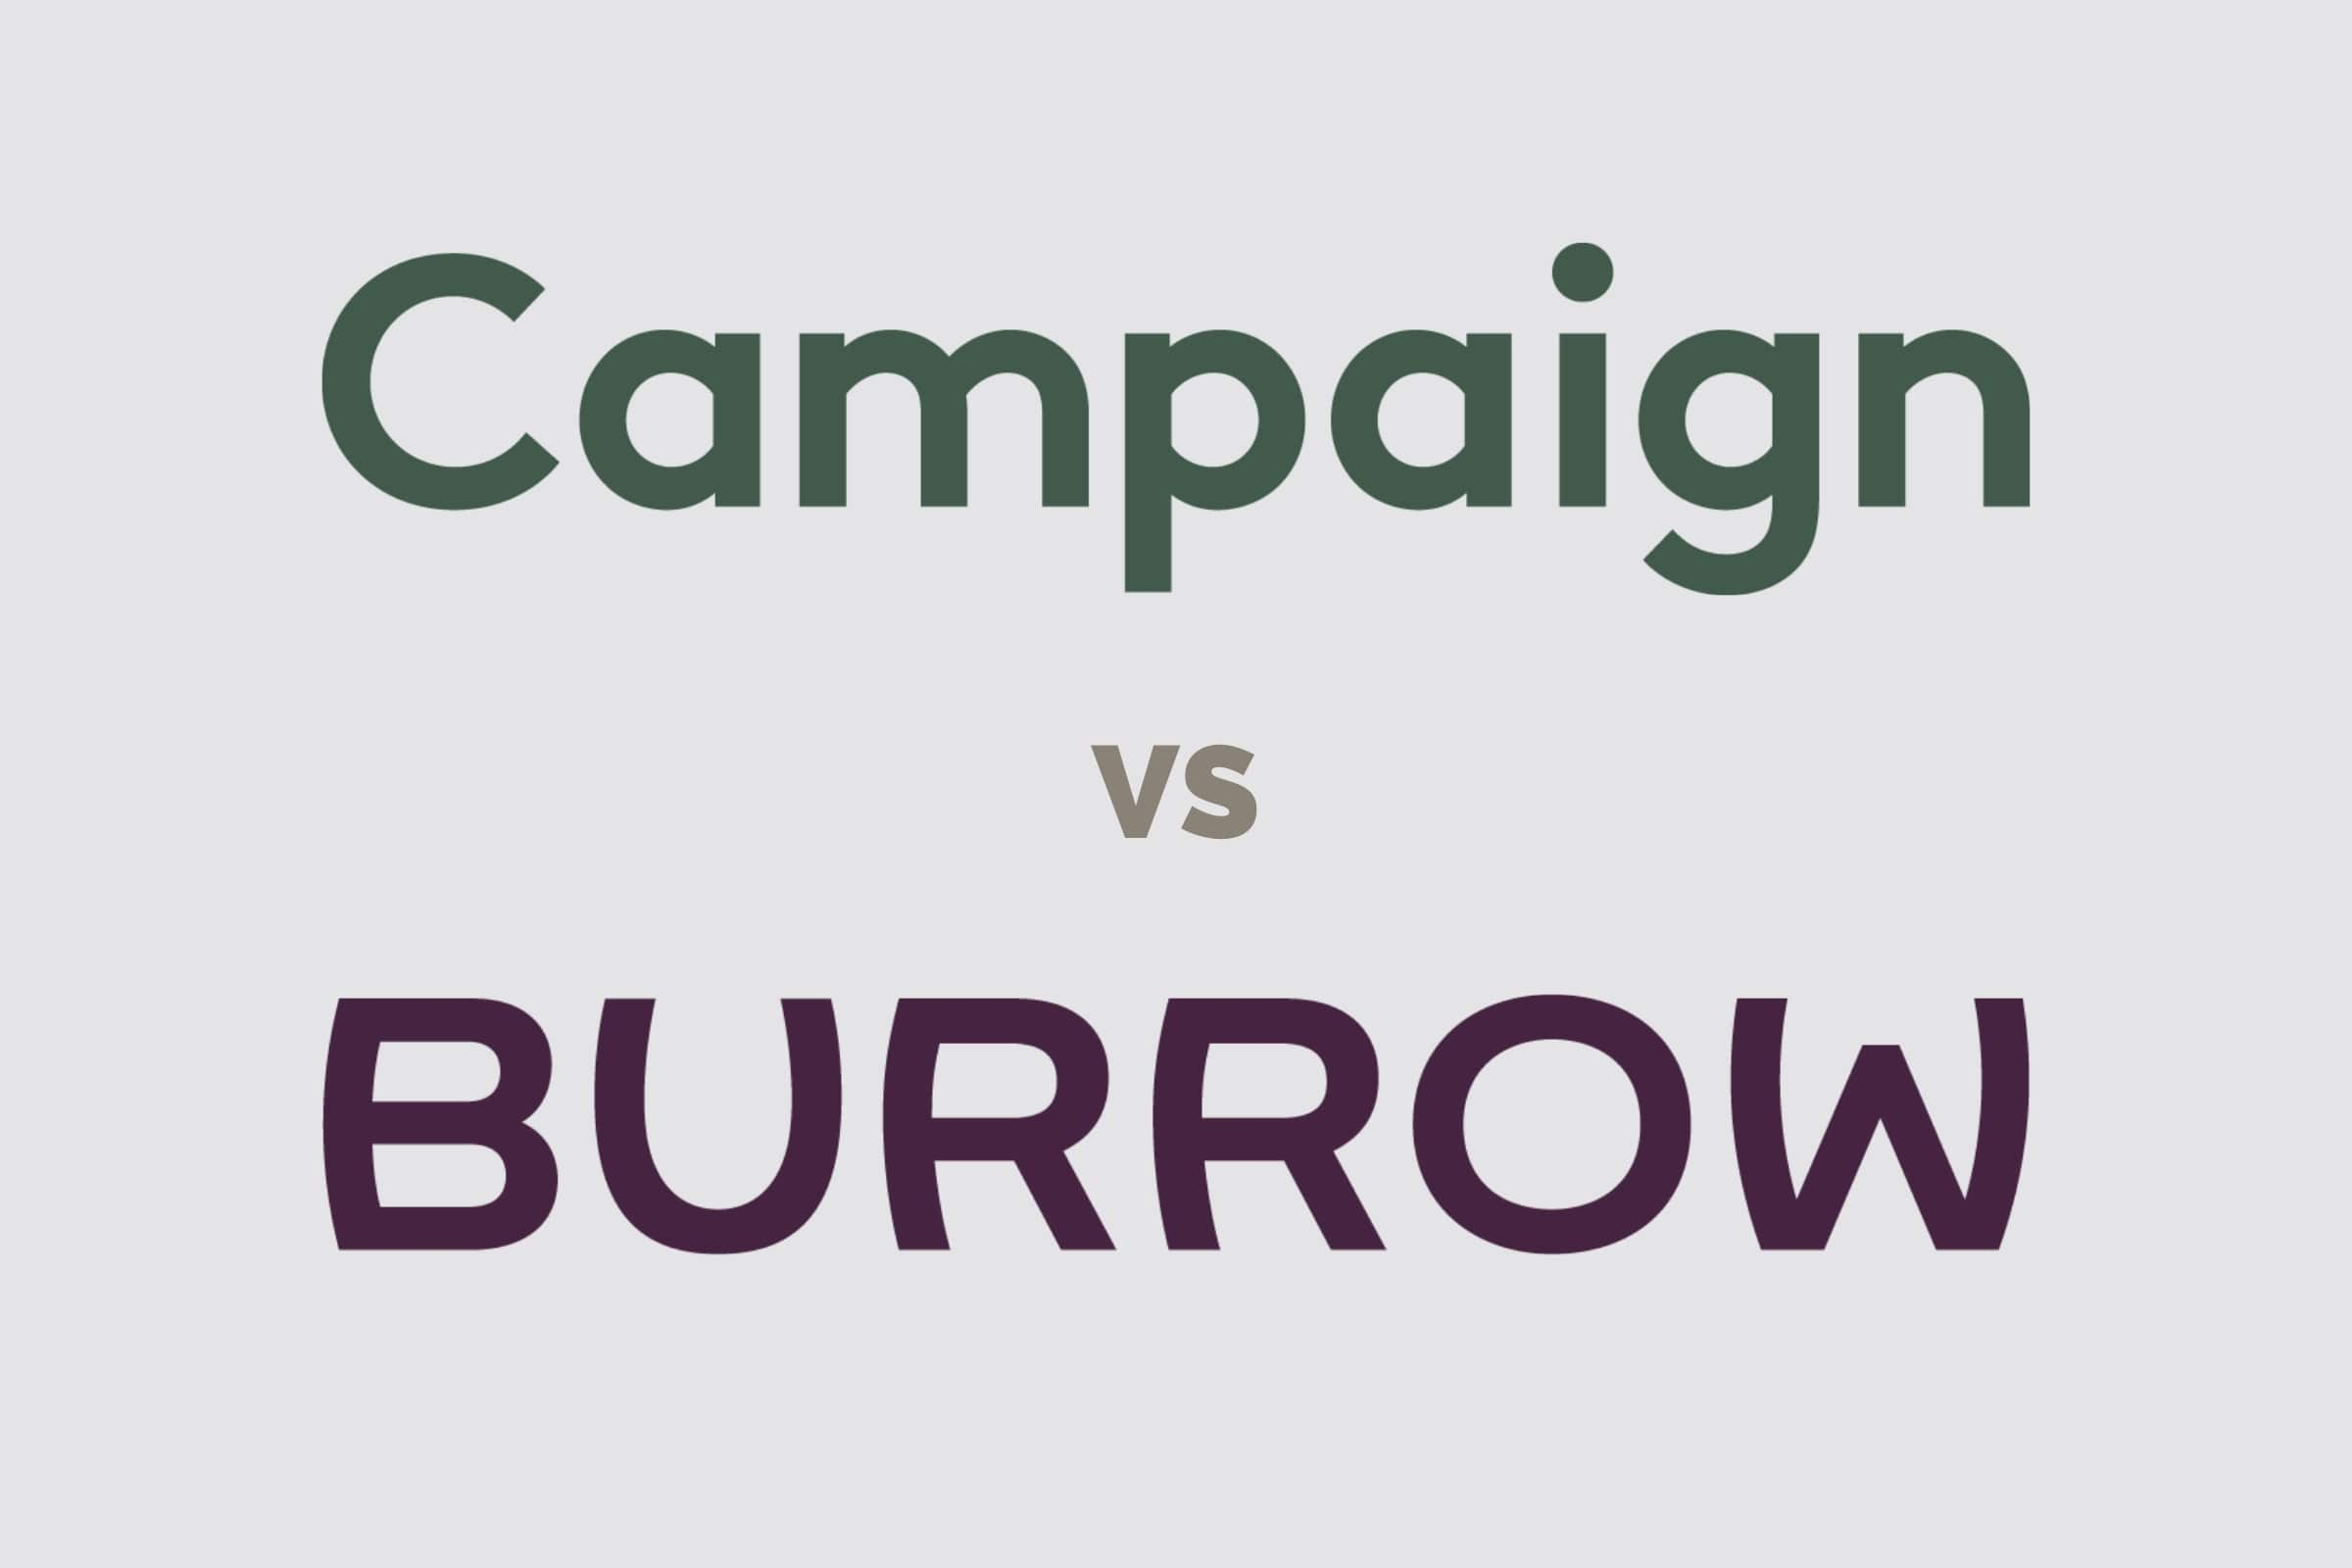 campaign vs burrow